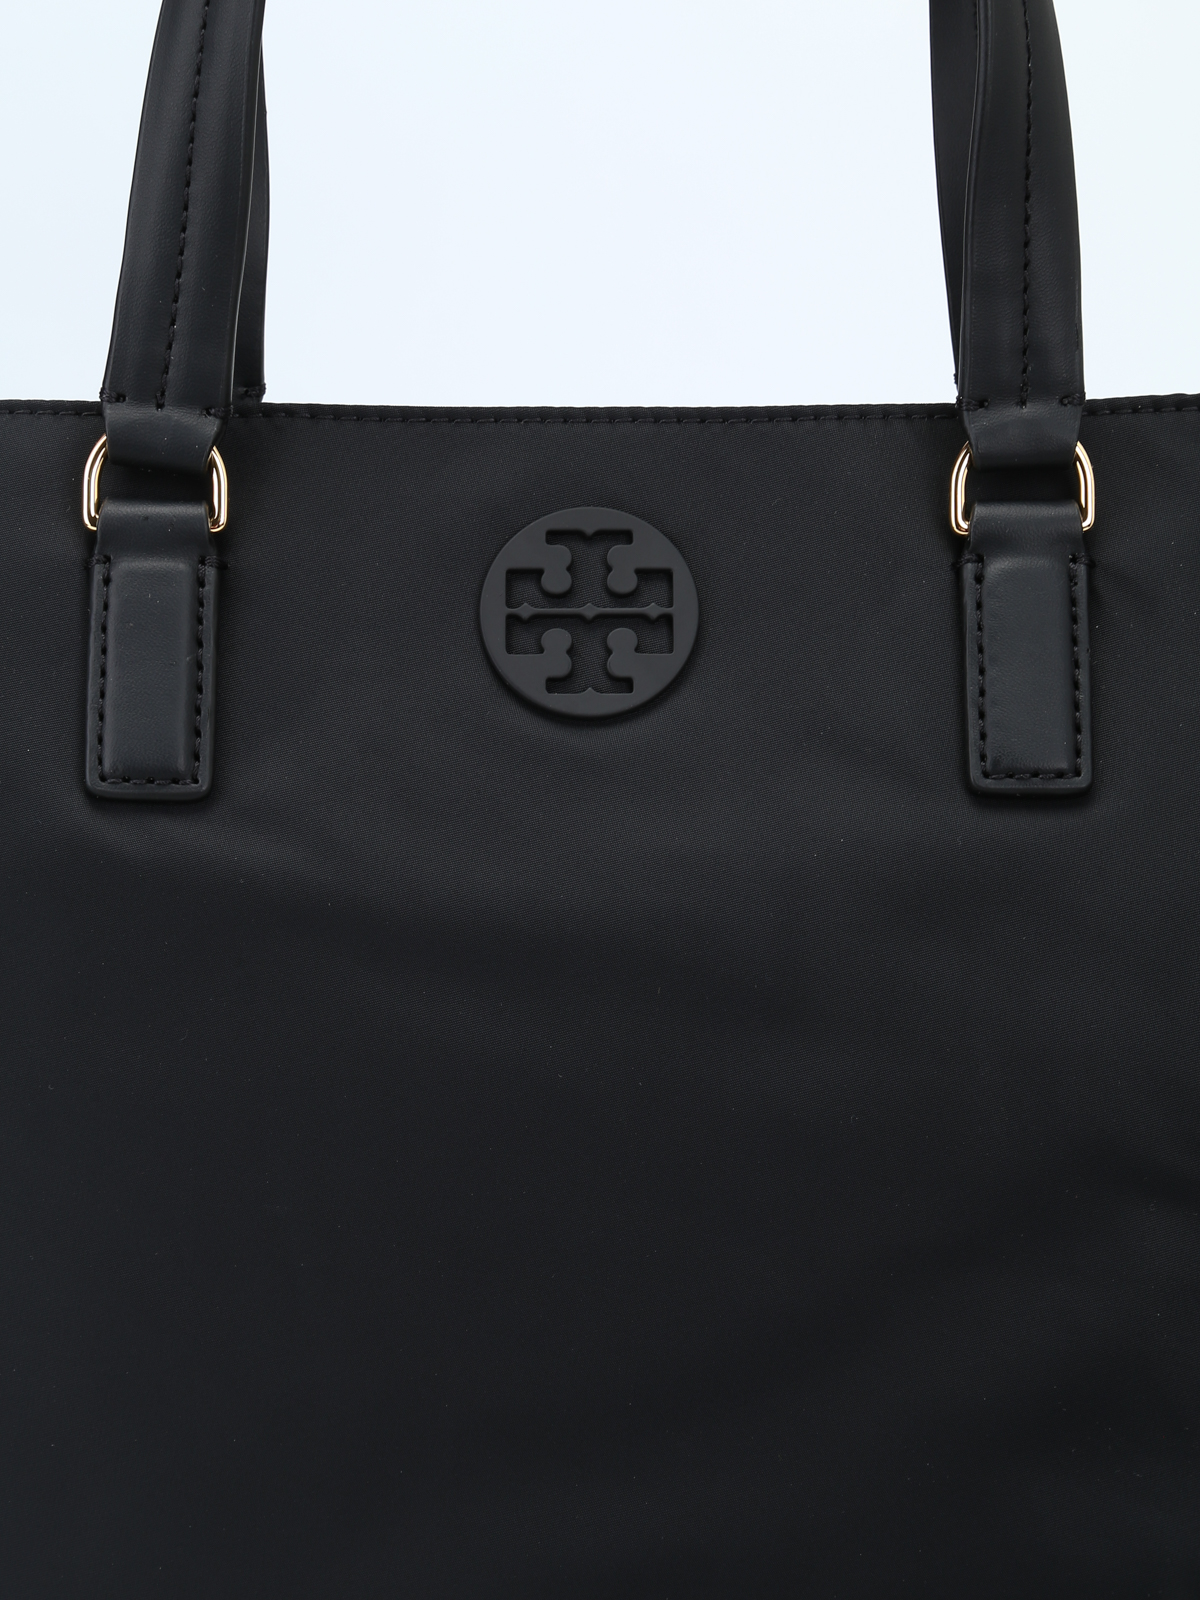 683657226 Tory Burch - Tilda black nylon small tote - totes bags - 51328 001